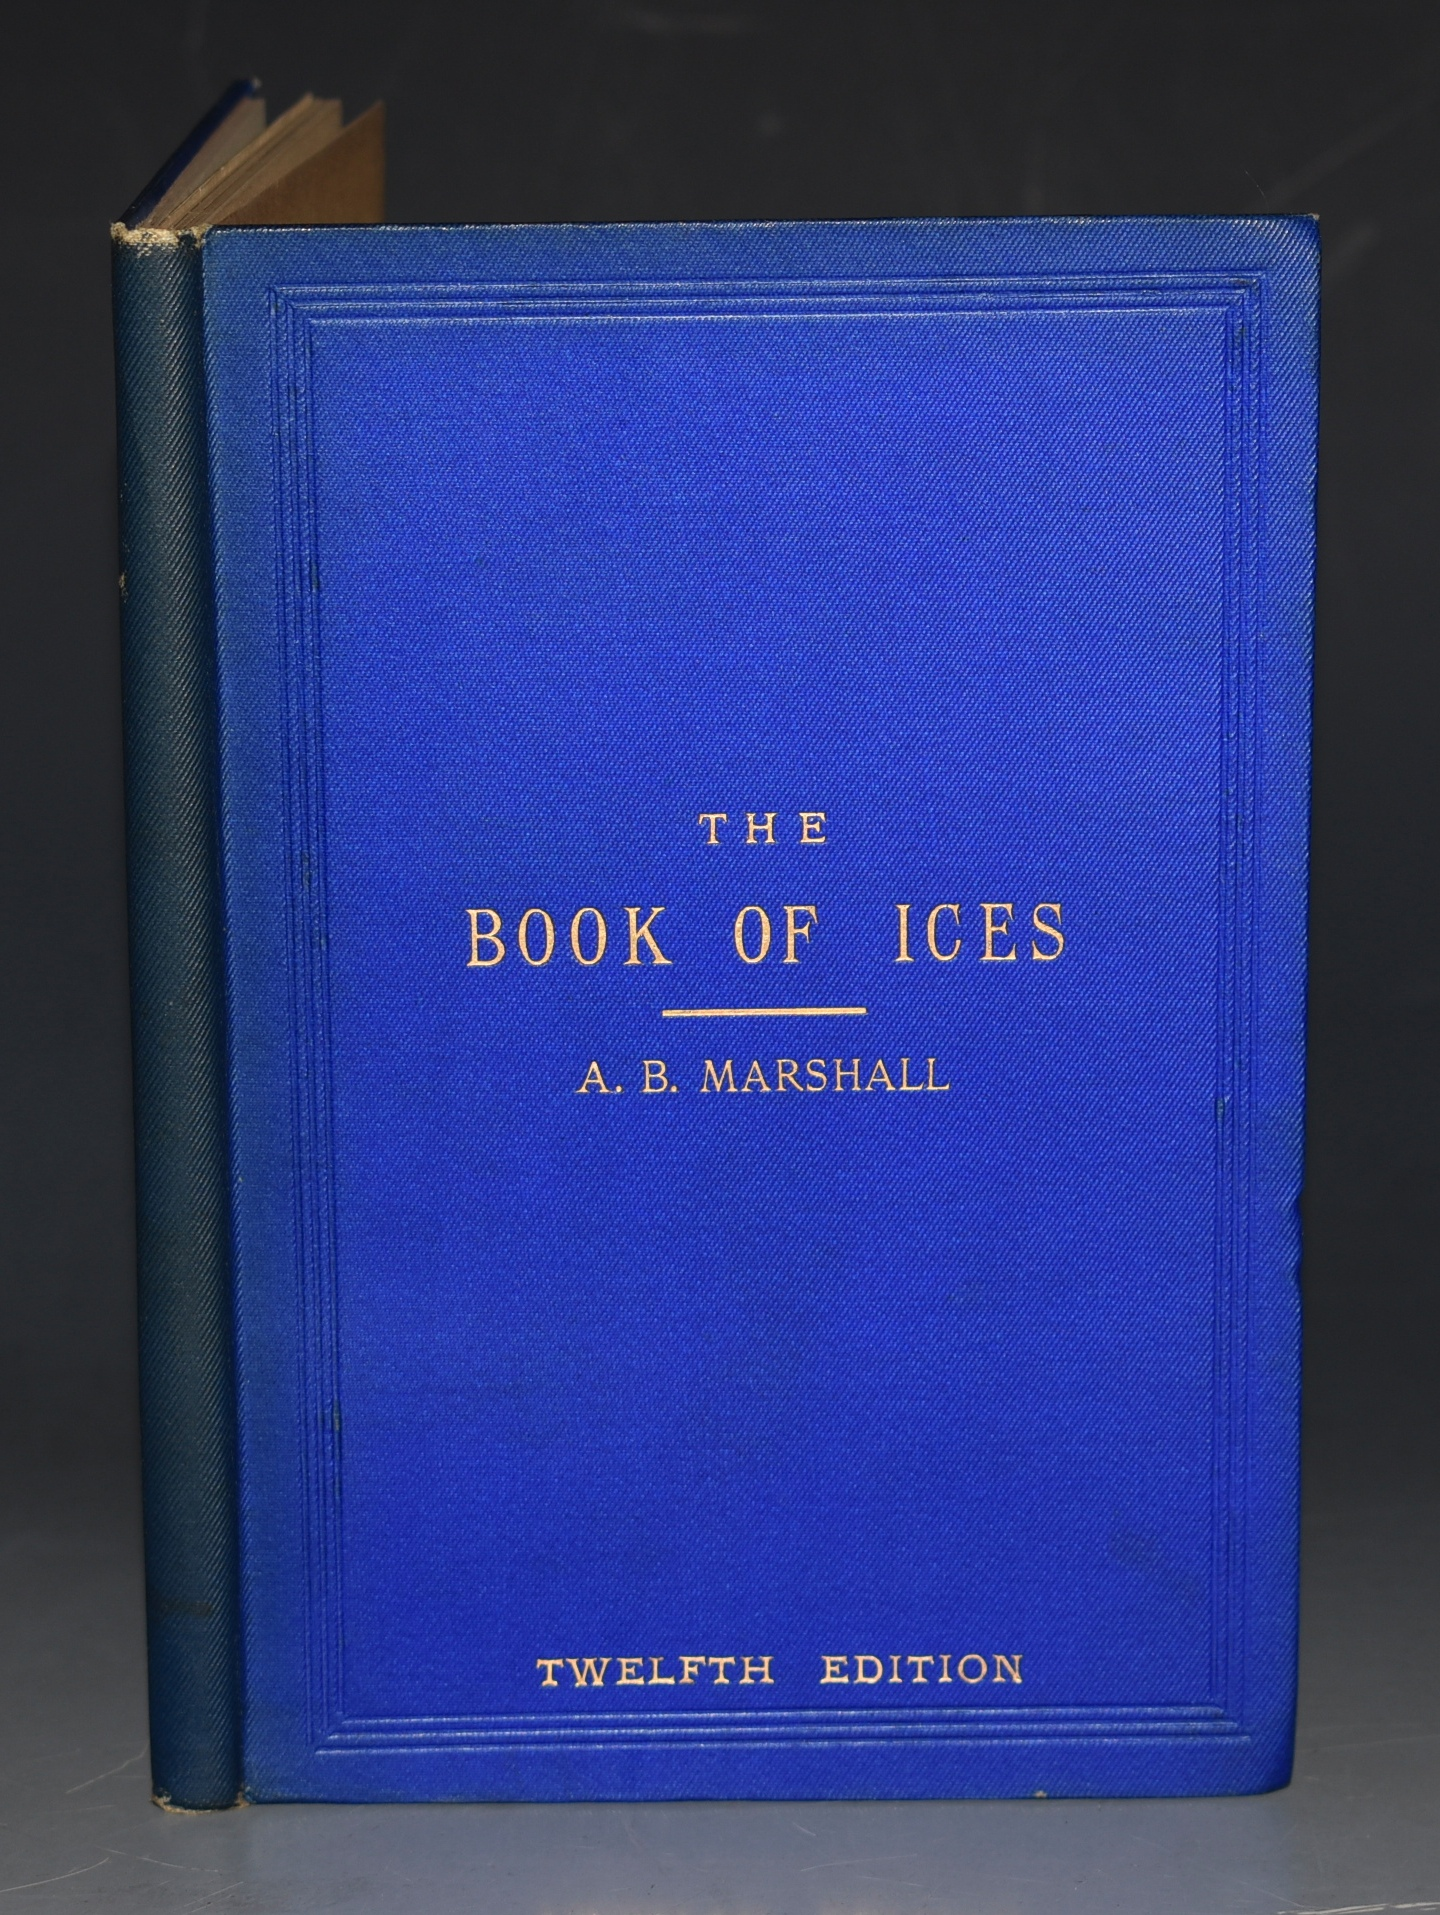 Image for The Book of Ices. Including, Cream and Water Ices, Sorbets, Mousses, Iced Souffles, and Various Iced Dishes, with Names in French and English, and Various coloured Designs for Ices. Twelfth Thousand.